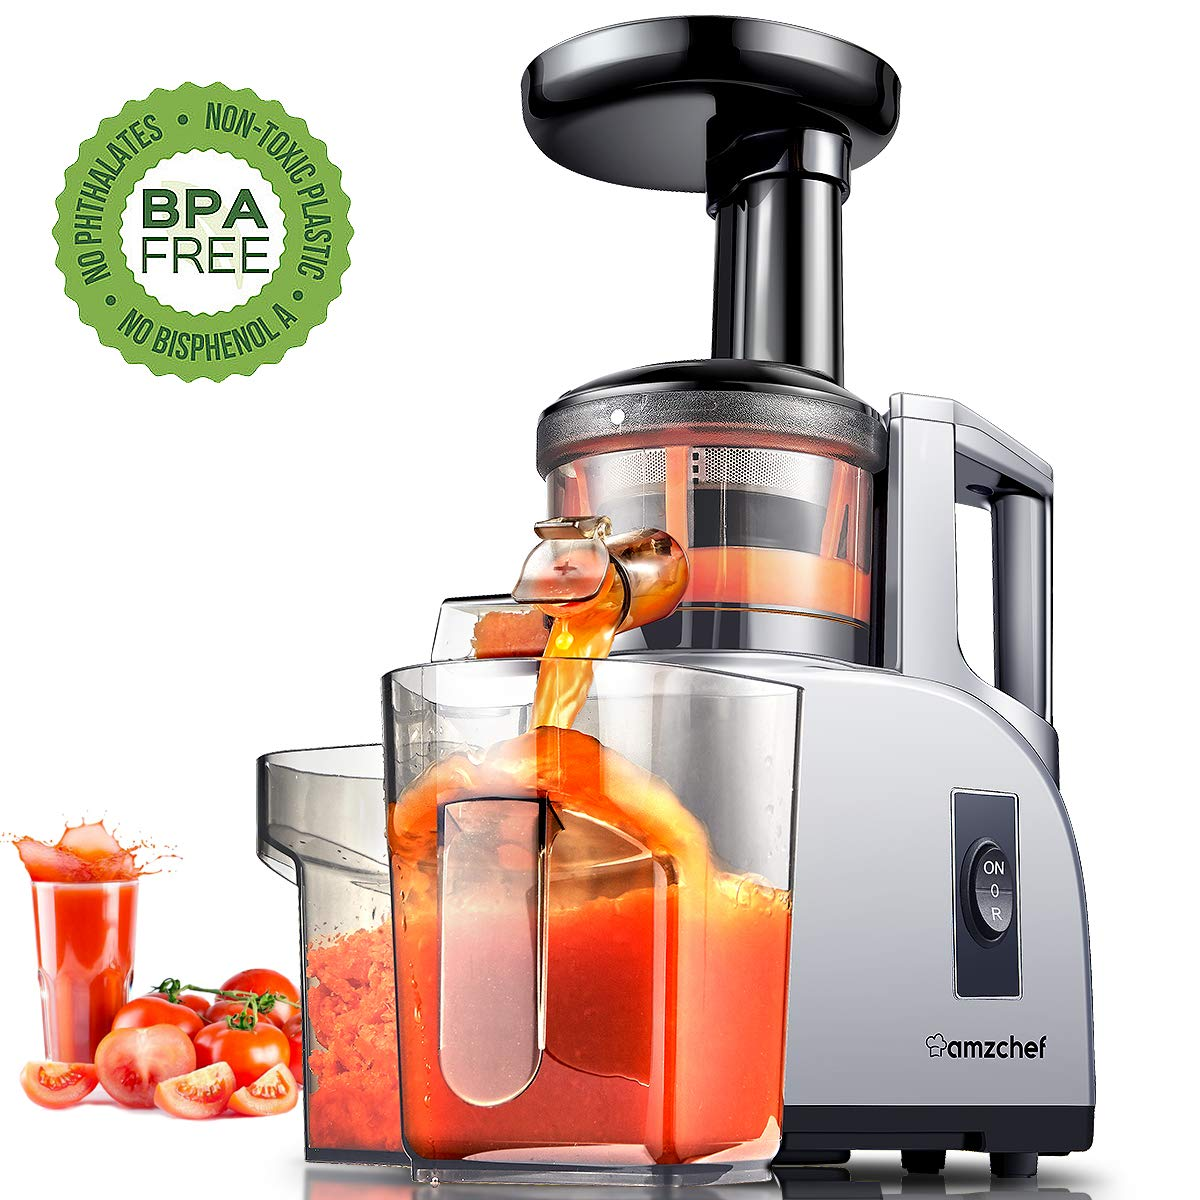 Slow Masticating Juicer Extractor Professional Machine with Quiet Motor//Reverse Function//Easy to Clean with Brush for Fruit /& Vegetable Juice AMZCHEF Juicer Renewed